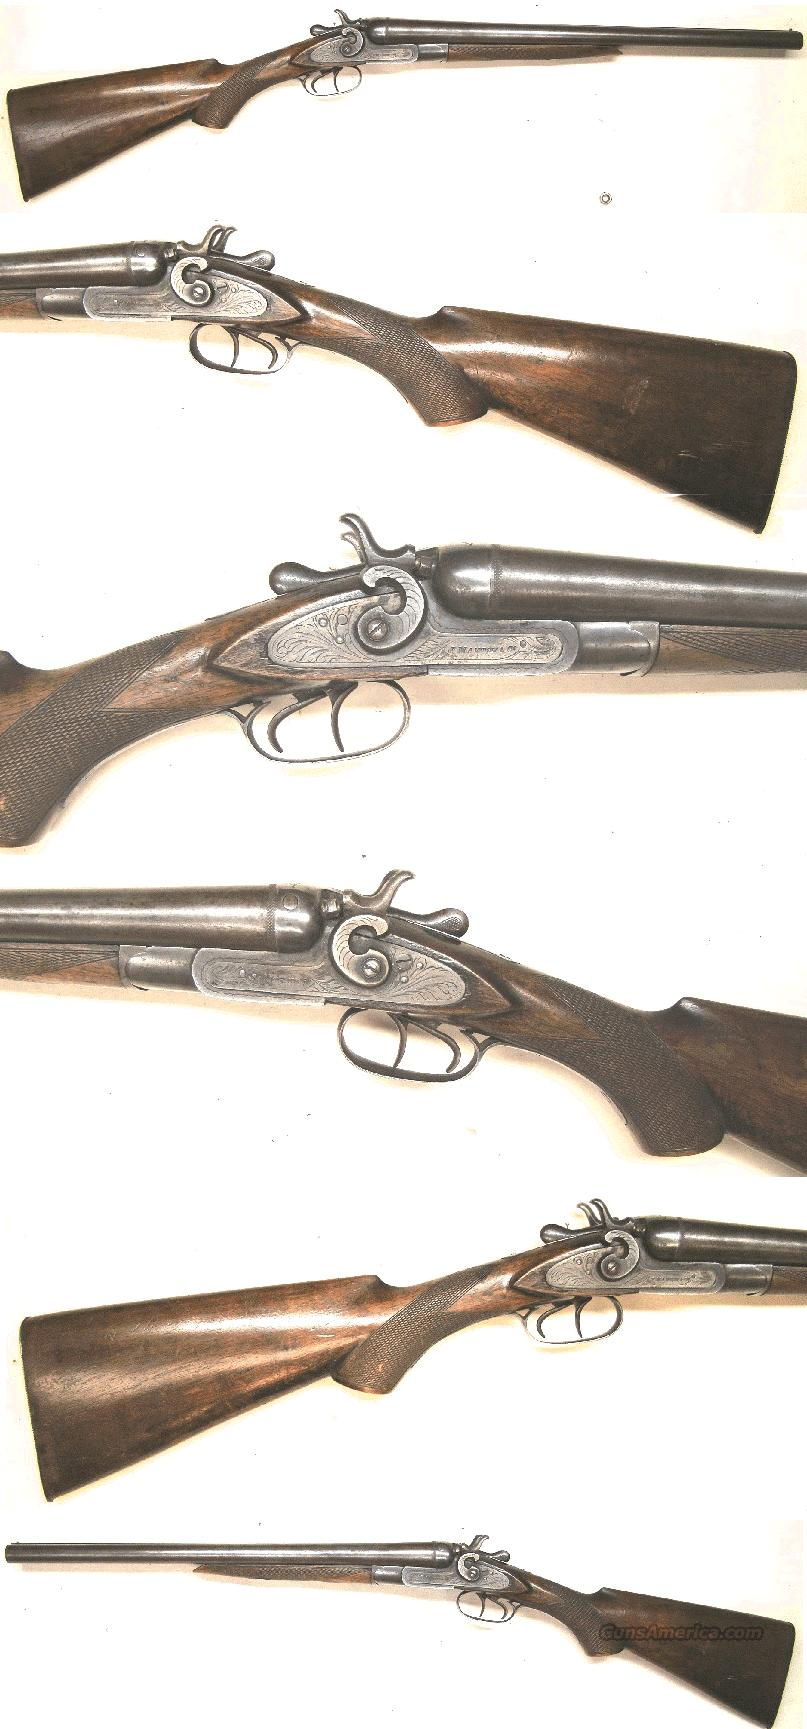 J.Manton & Co Coach Gun  12 ga  Guns > Shotguns > Antique (Pre-1899) Shotguns - Misc.